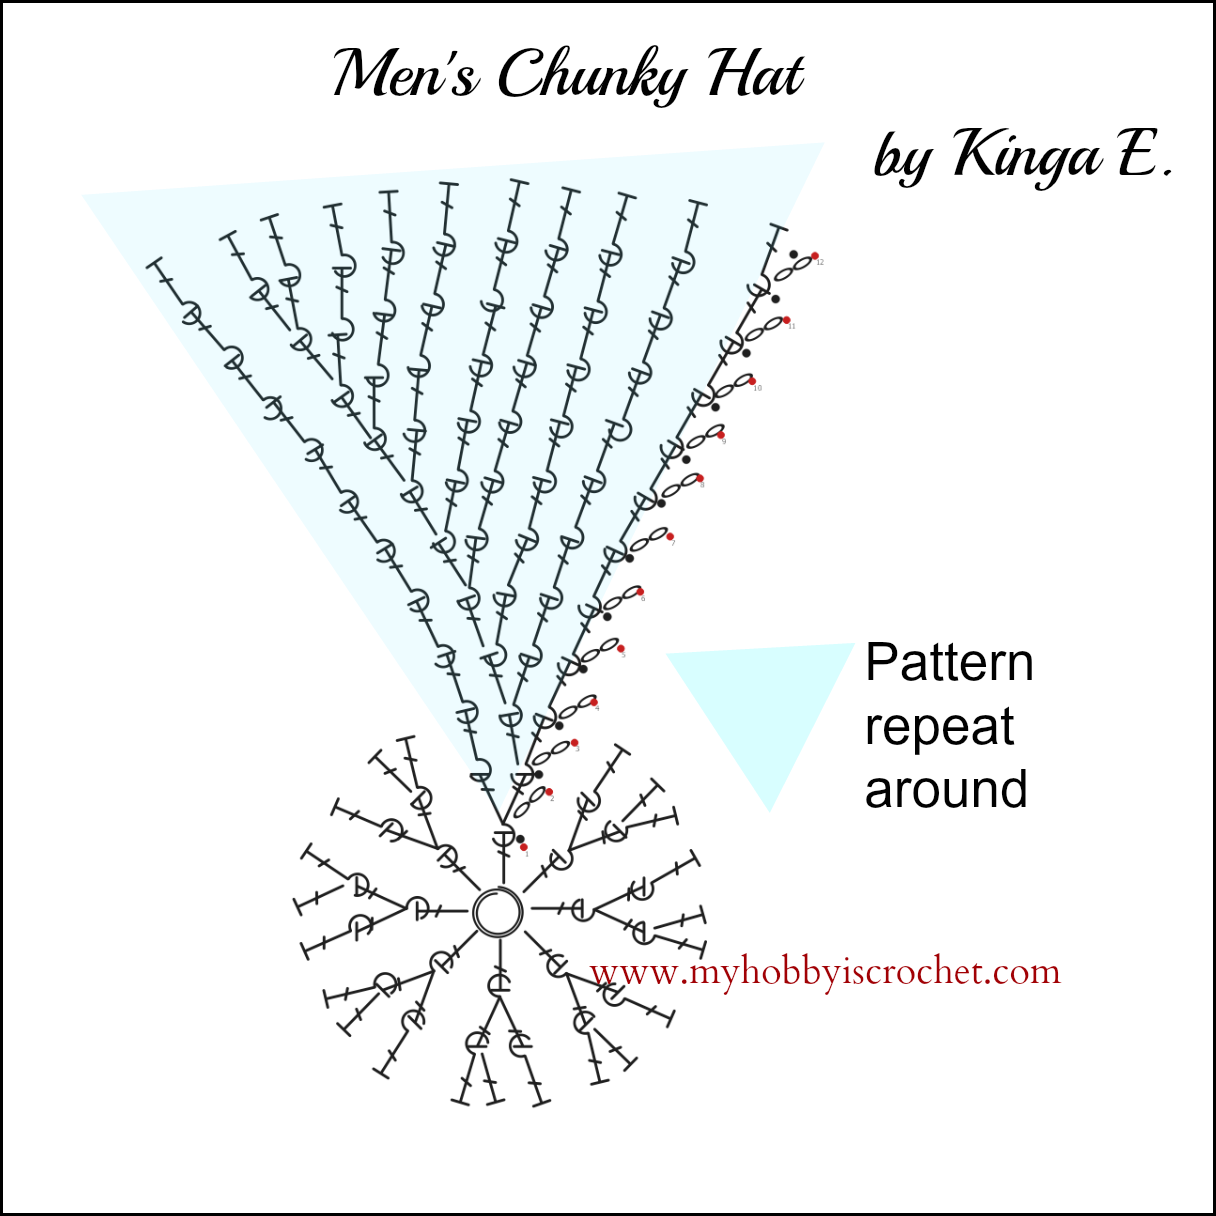 My Hobby Is Crochet Mens Chunky Hat Free Crochet Pattern